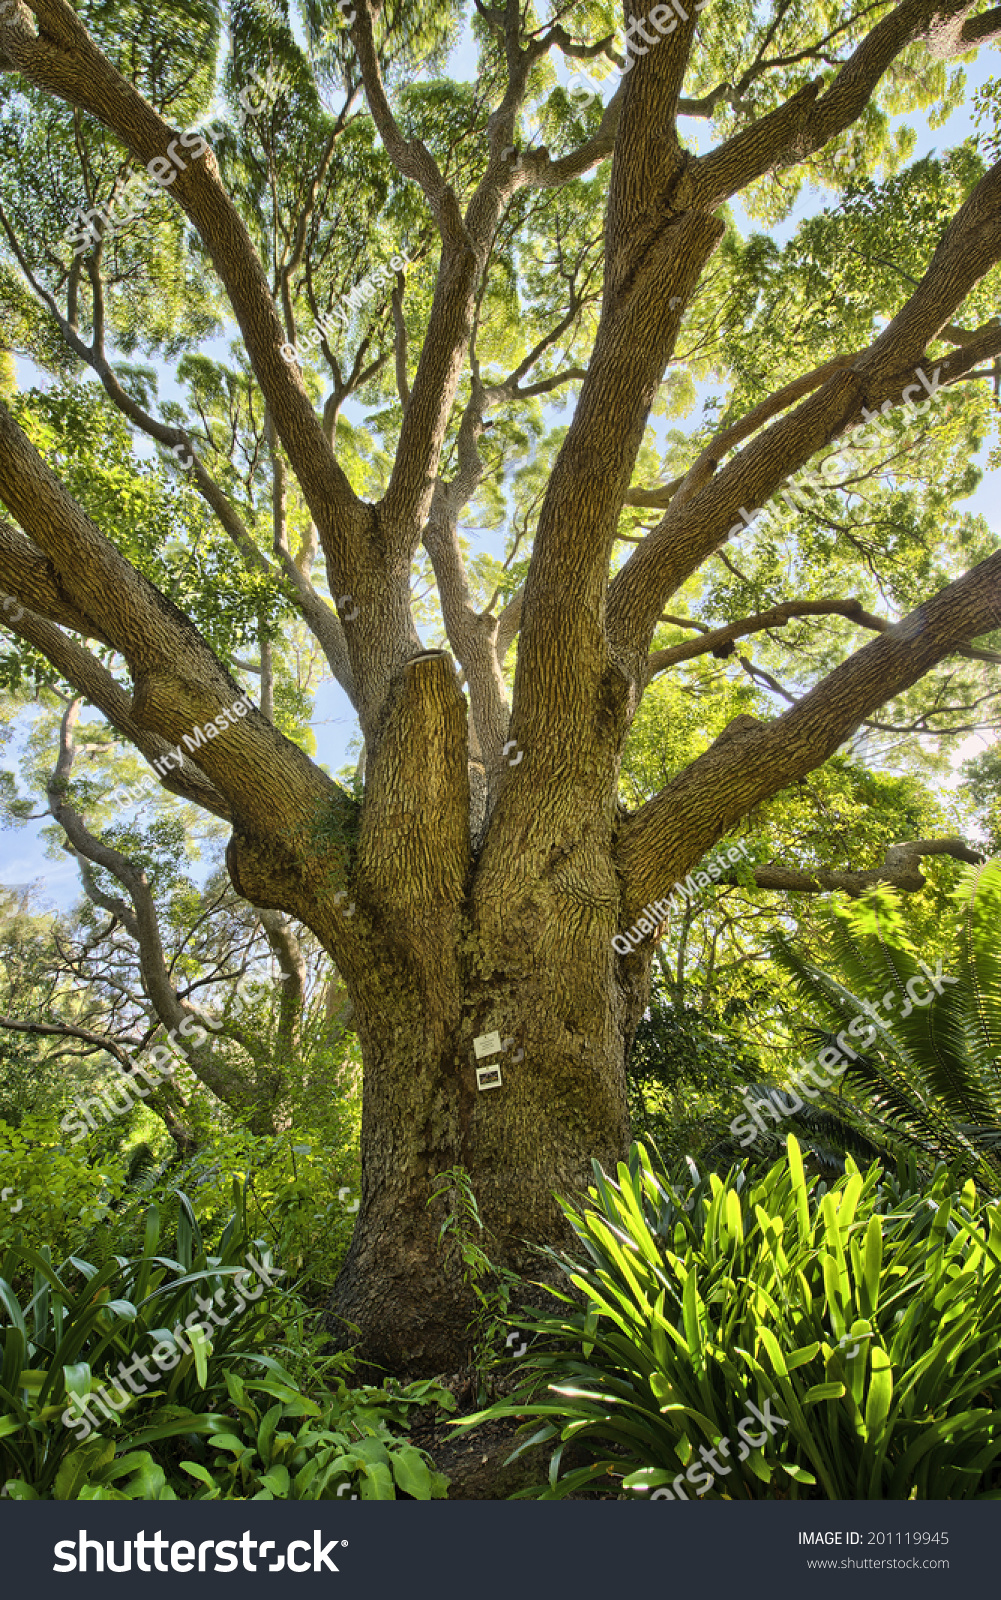 Kirstenbosch National Botanical Garden is acclaimed as one of the ...